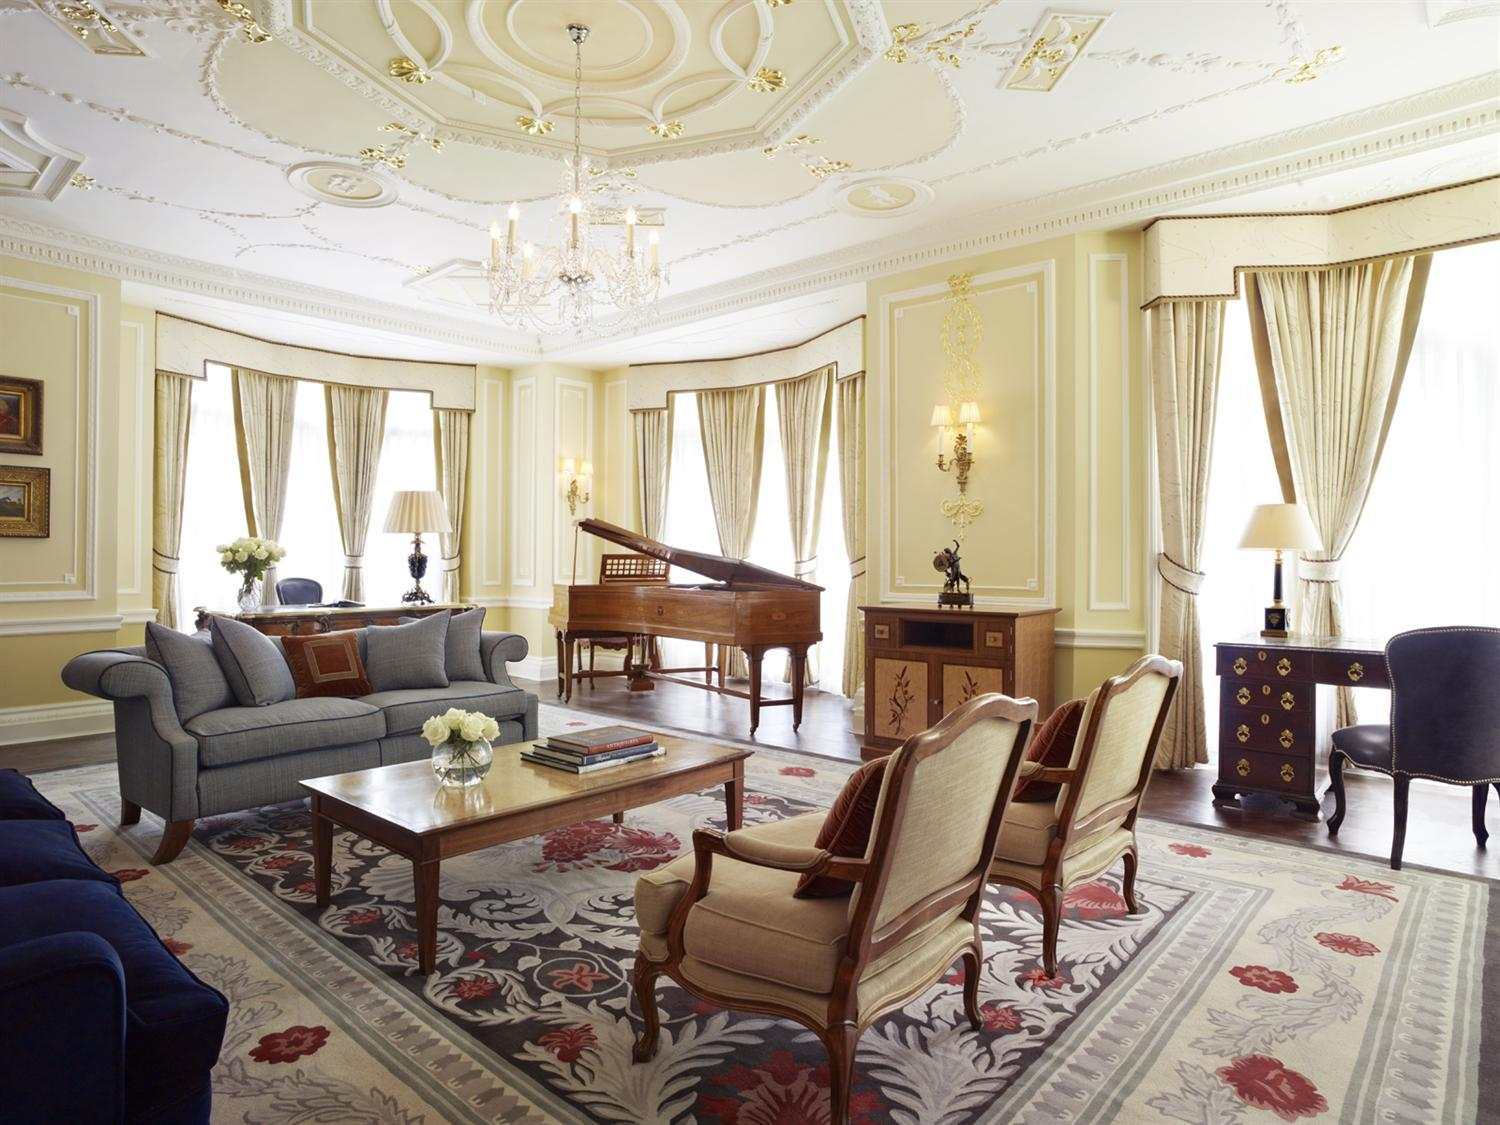 10 most extravagant hotels in london for Design hotel england